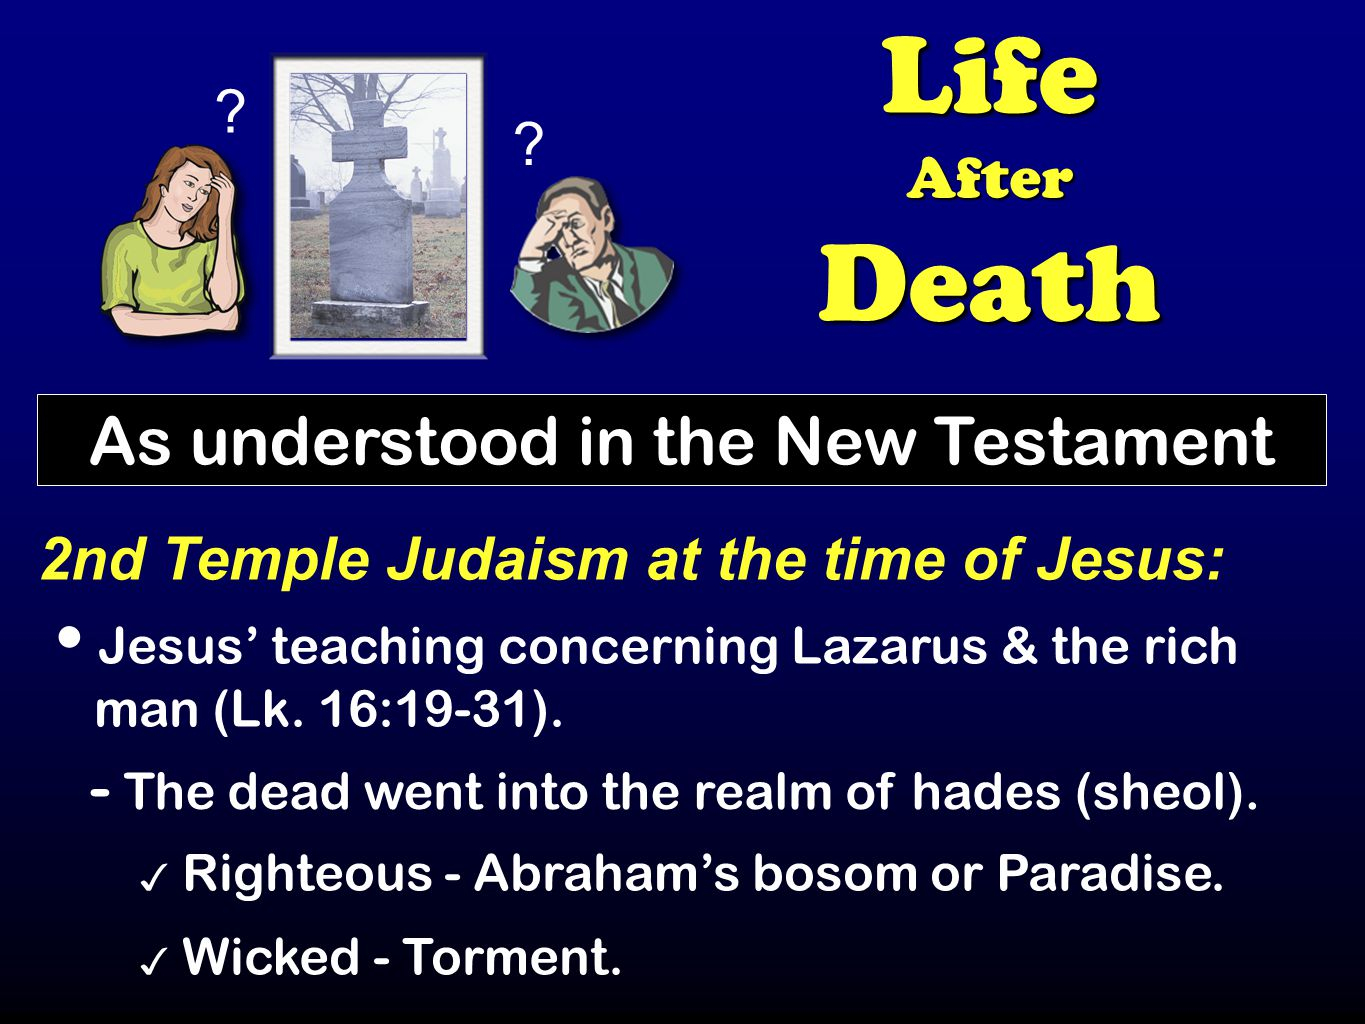 ? ? LifeAfterDeath As understood in the New Testament 2nd Temple Judaism at the time of Jesus: Jesus' teaching concerning Lazarus & the rich man (Lk.